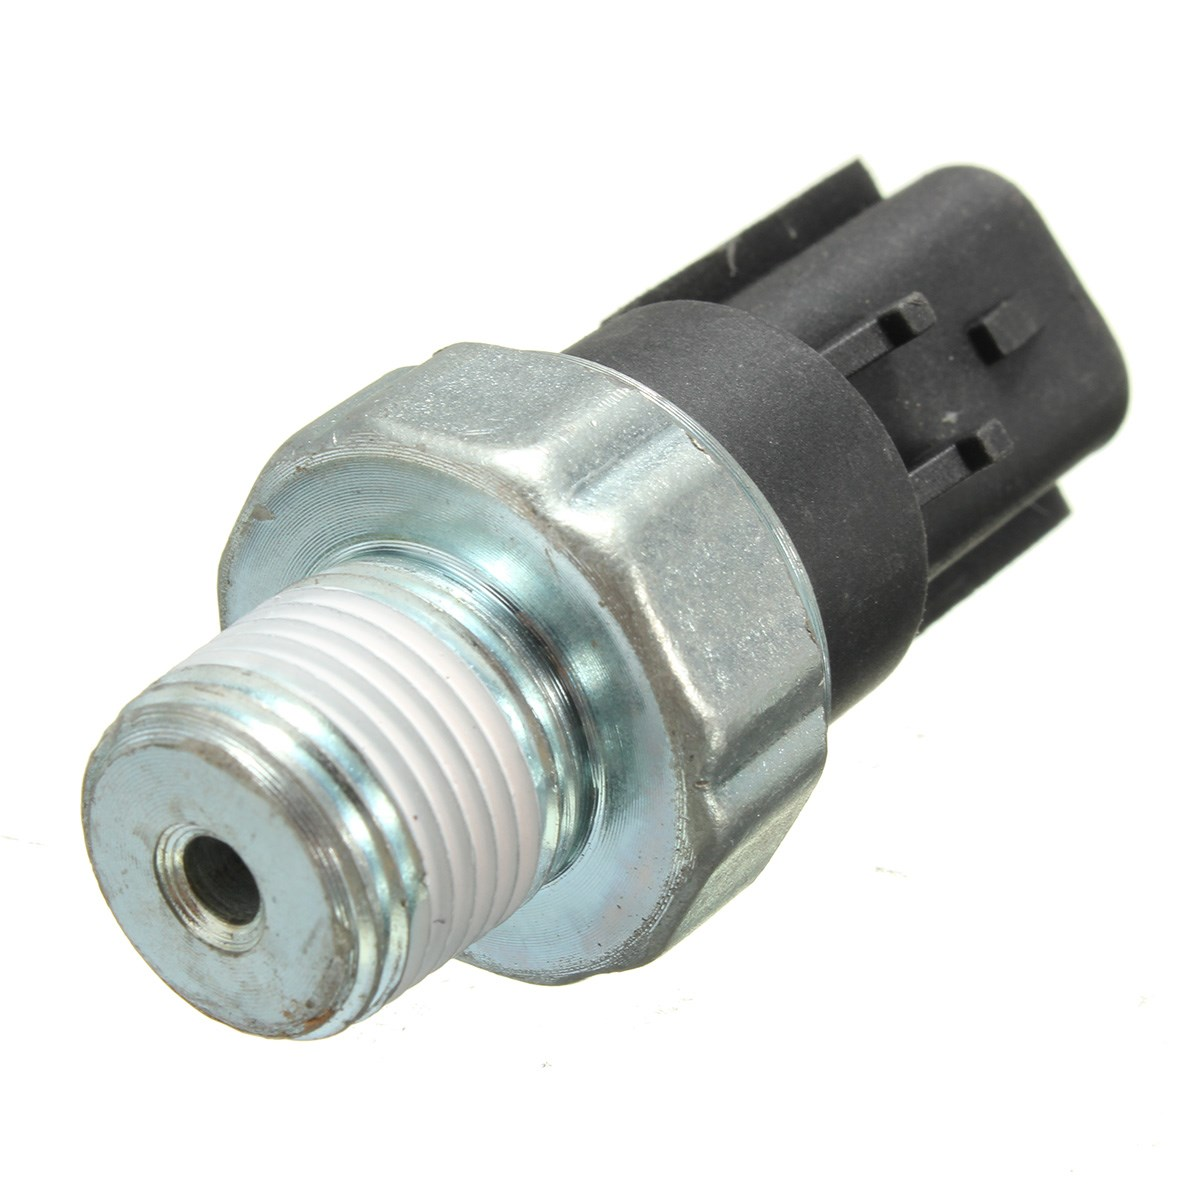 hight resolution of car auto engine oil pressure sensor switch for chrysler dodge jeep ps287